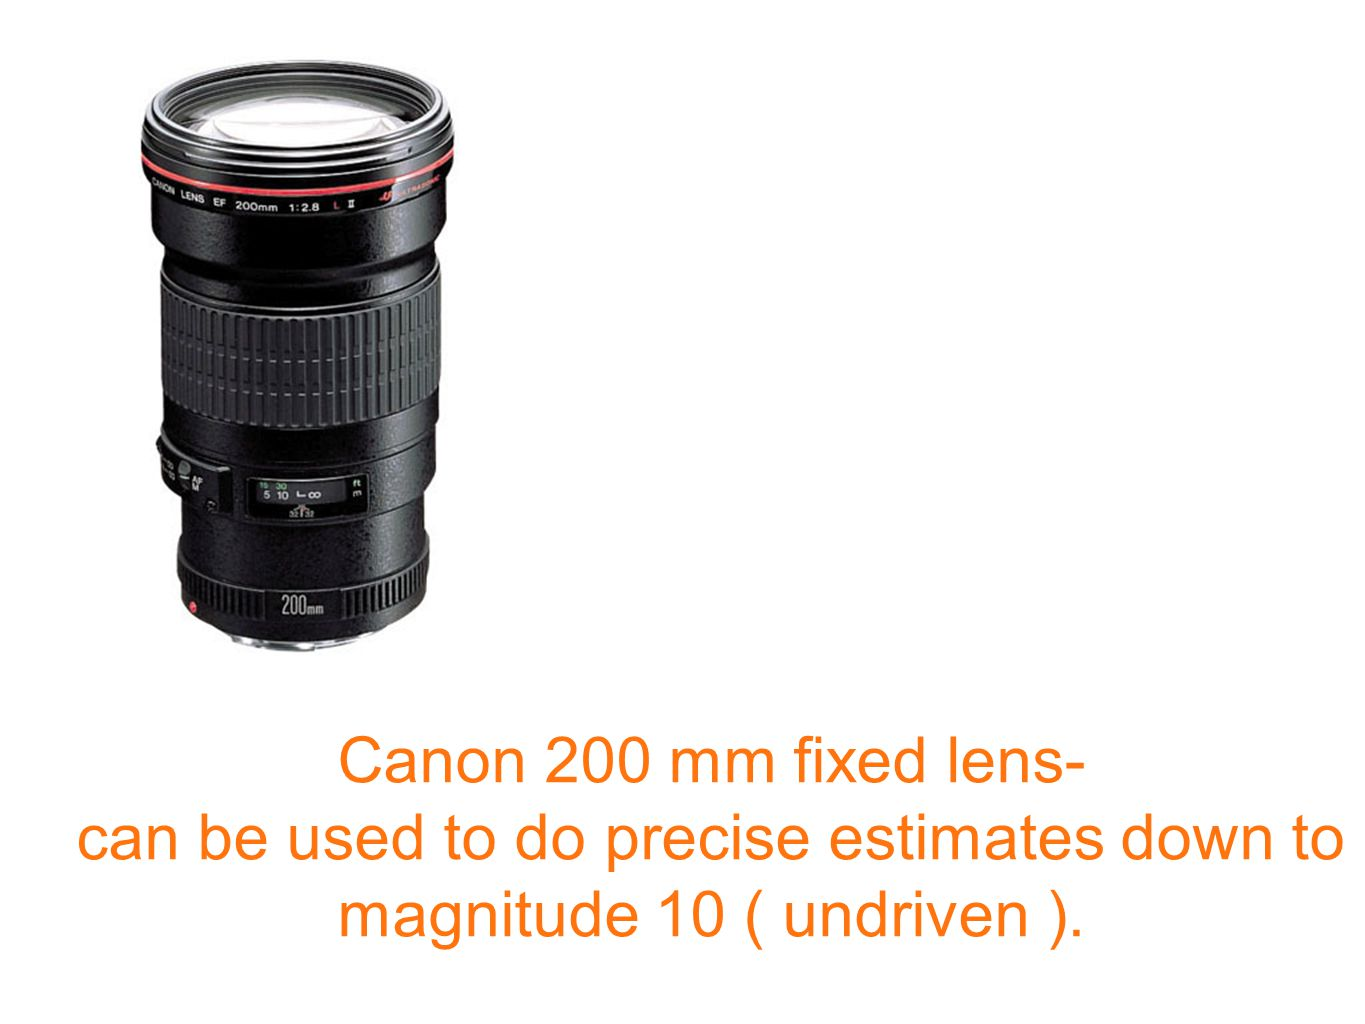 Canon 200 mm fixed lens- can be used to do precise estimates down to magnitude 10 ( undriven ).